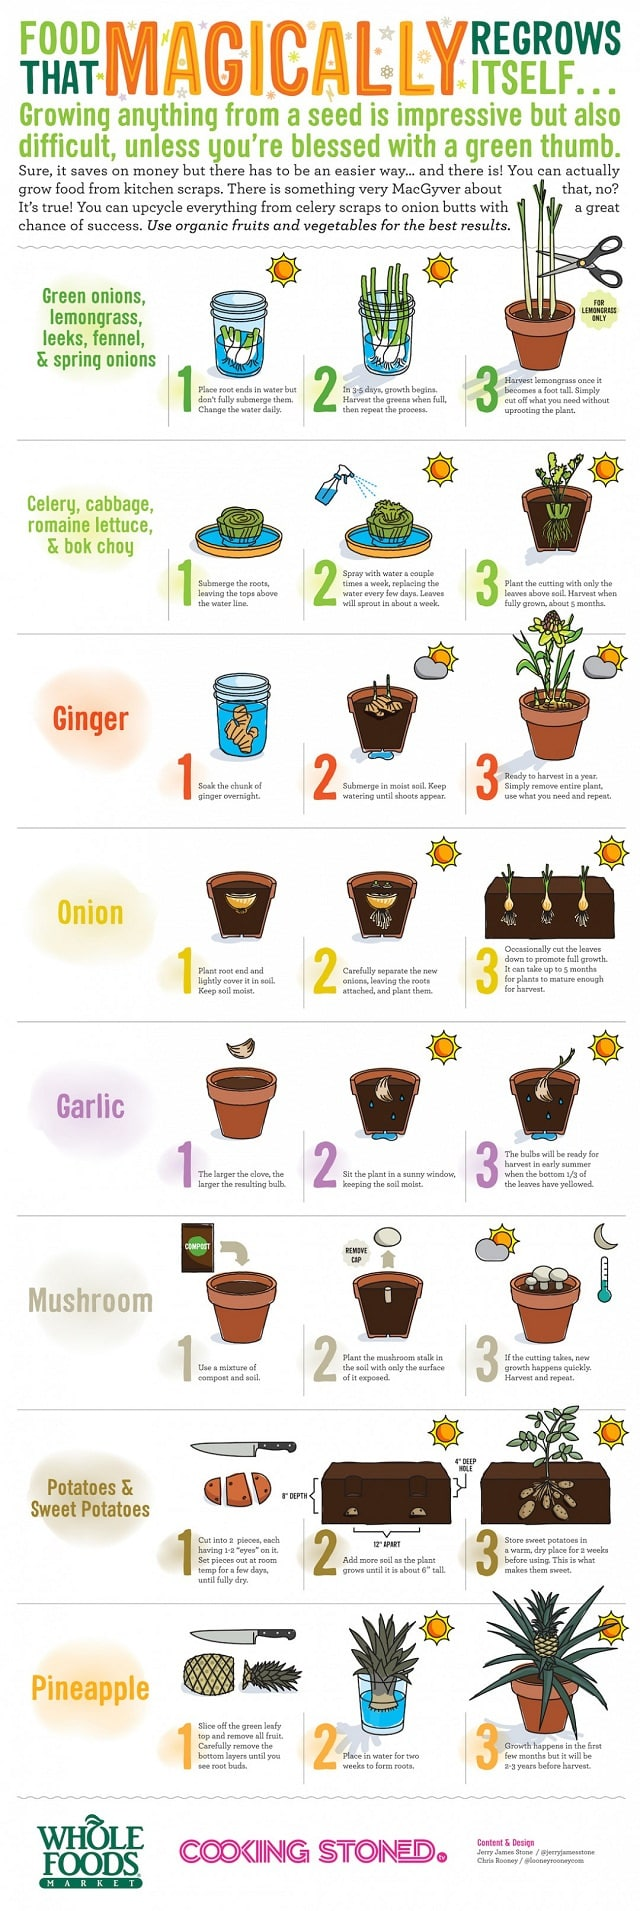 regrow-food-from-kitchen-scraps-inf